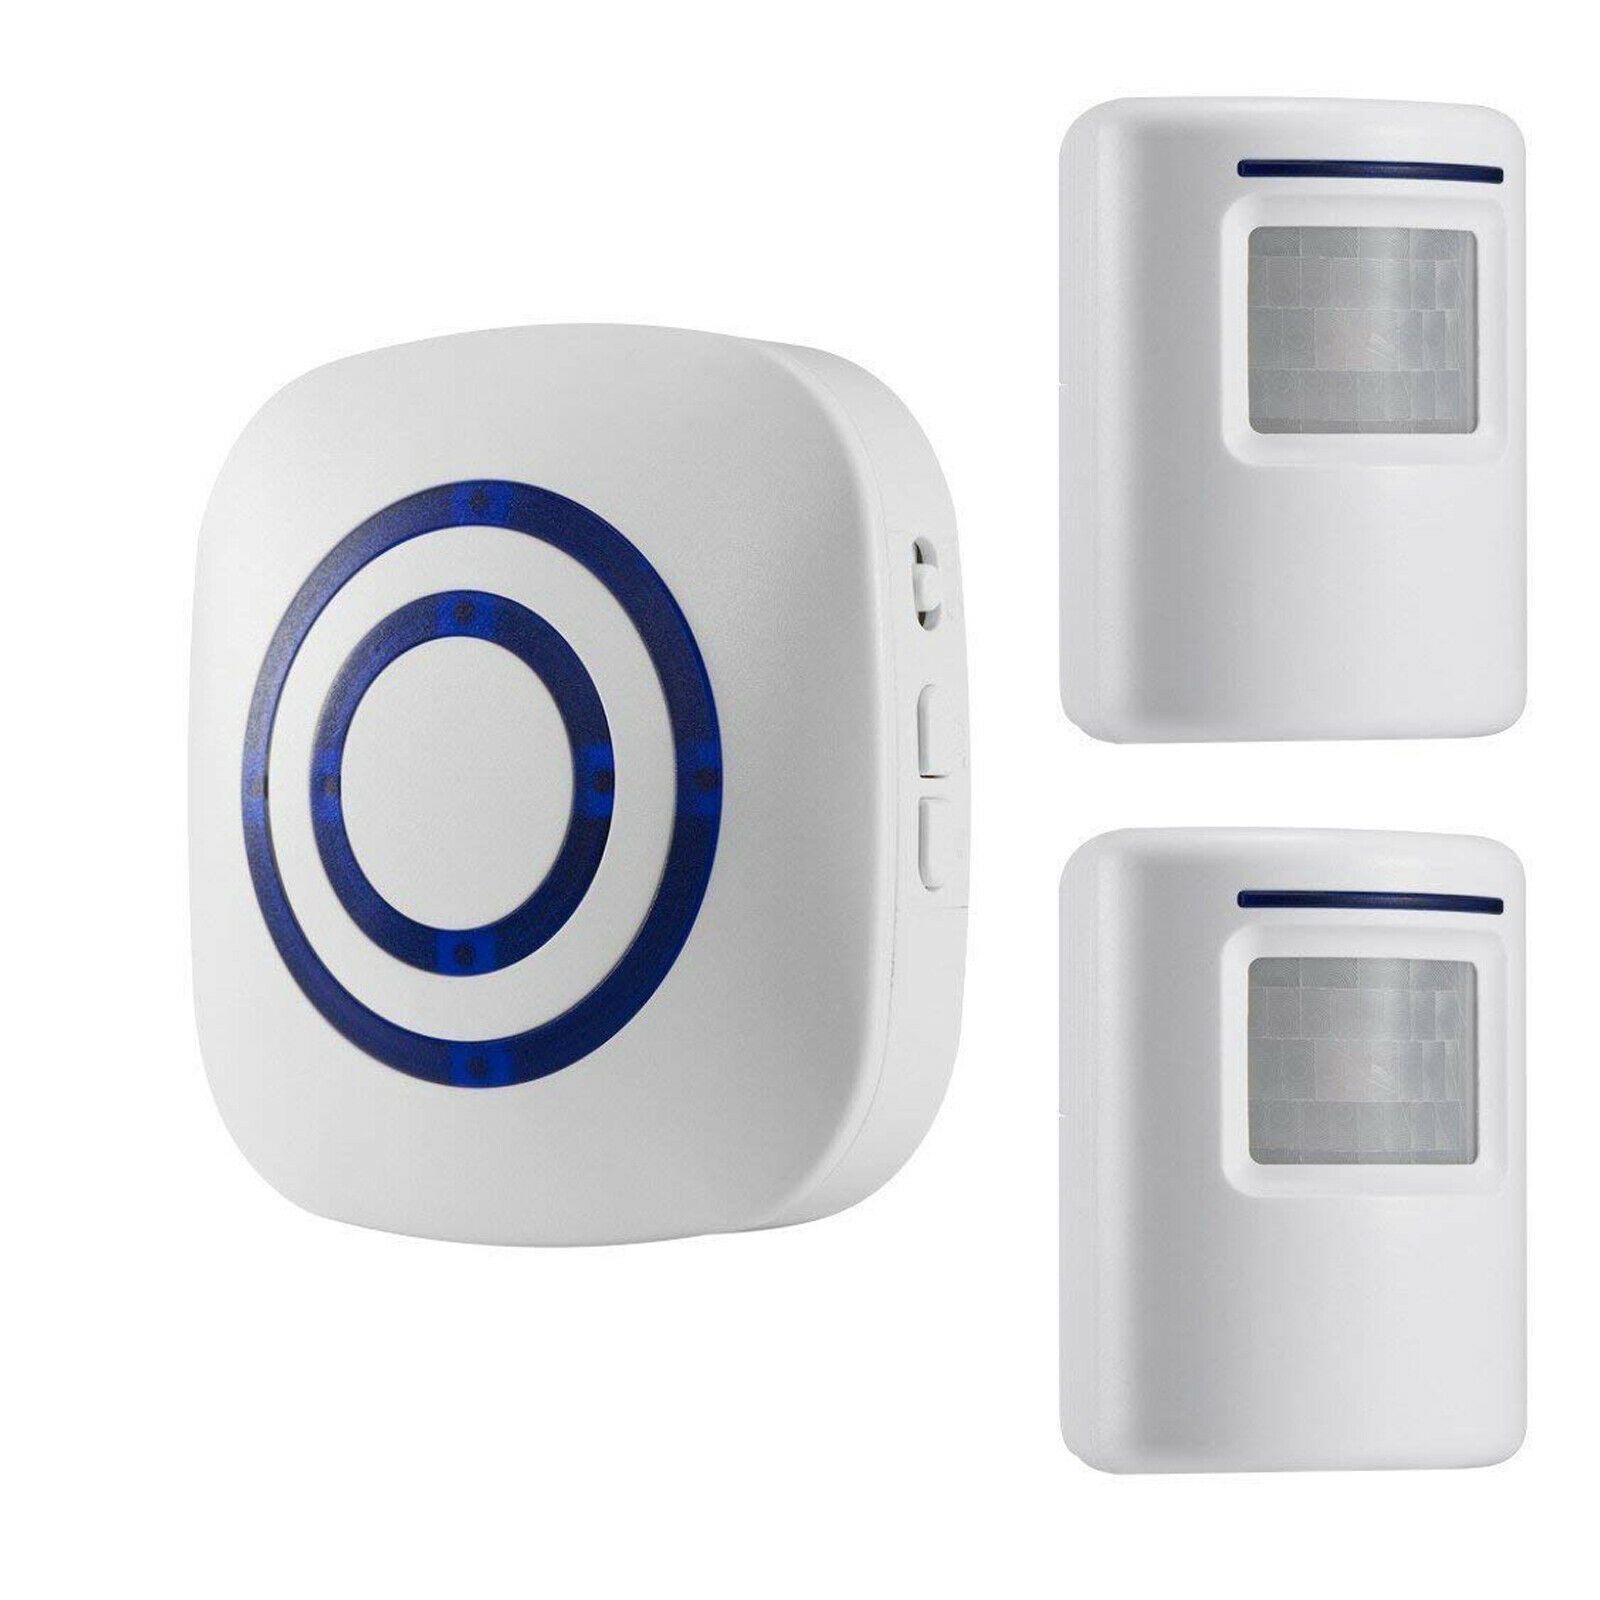 Infrared Human Body Induction Doorbell Wireless Welcome Plug-in Two-part Doorbell white